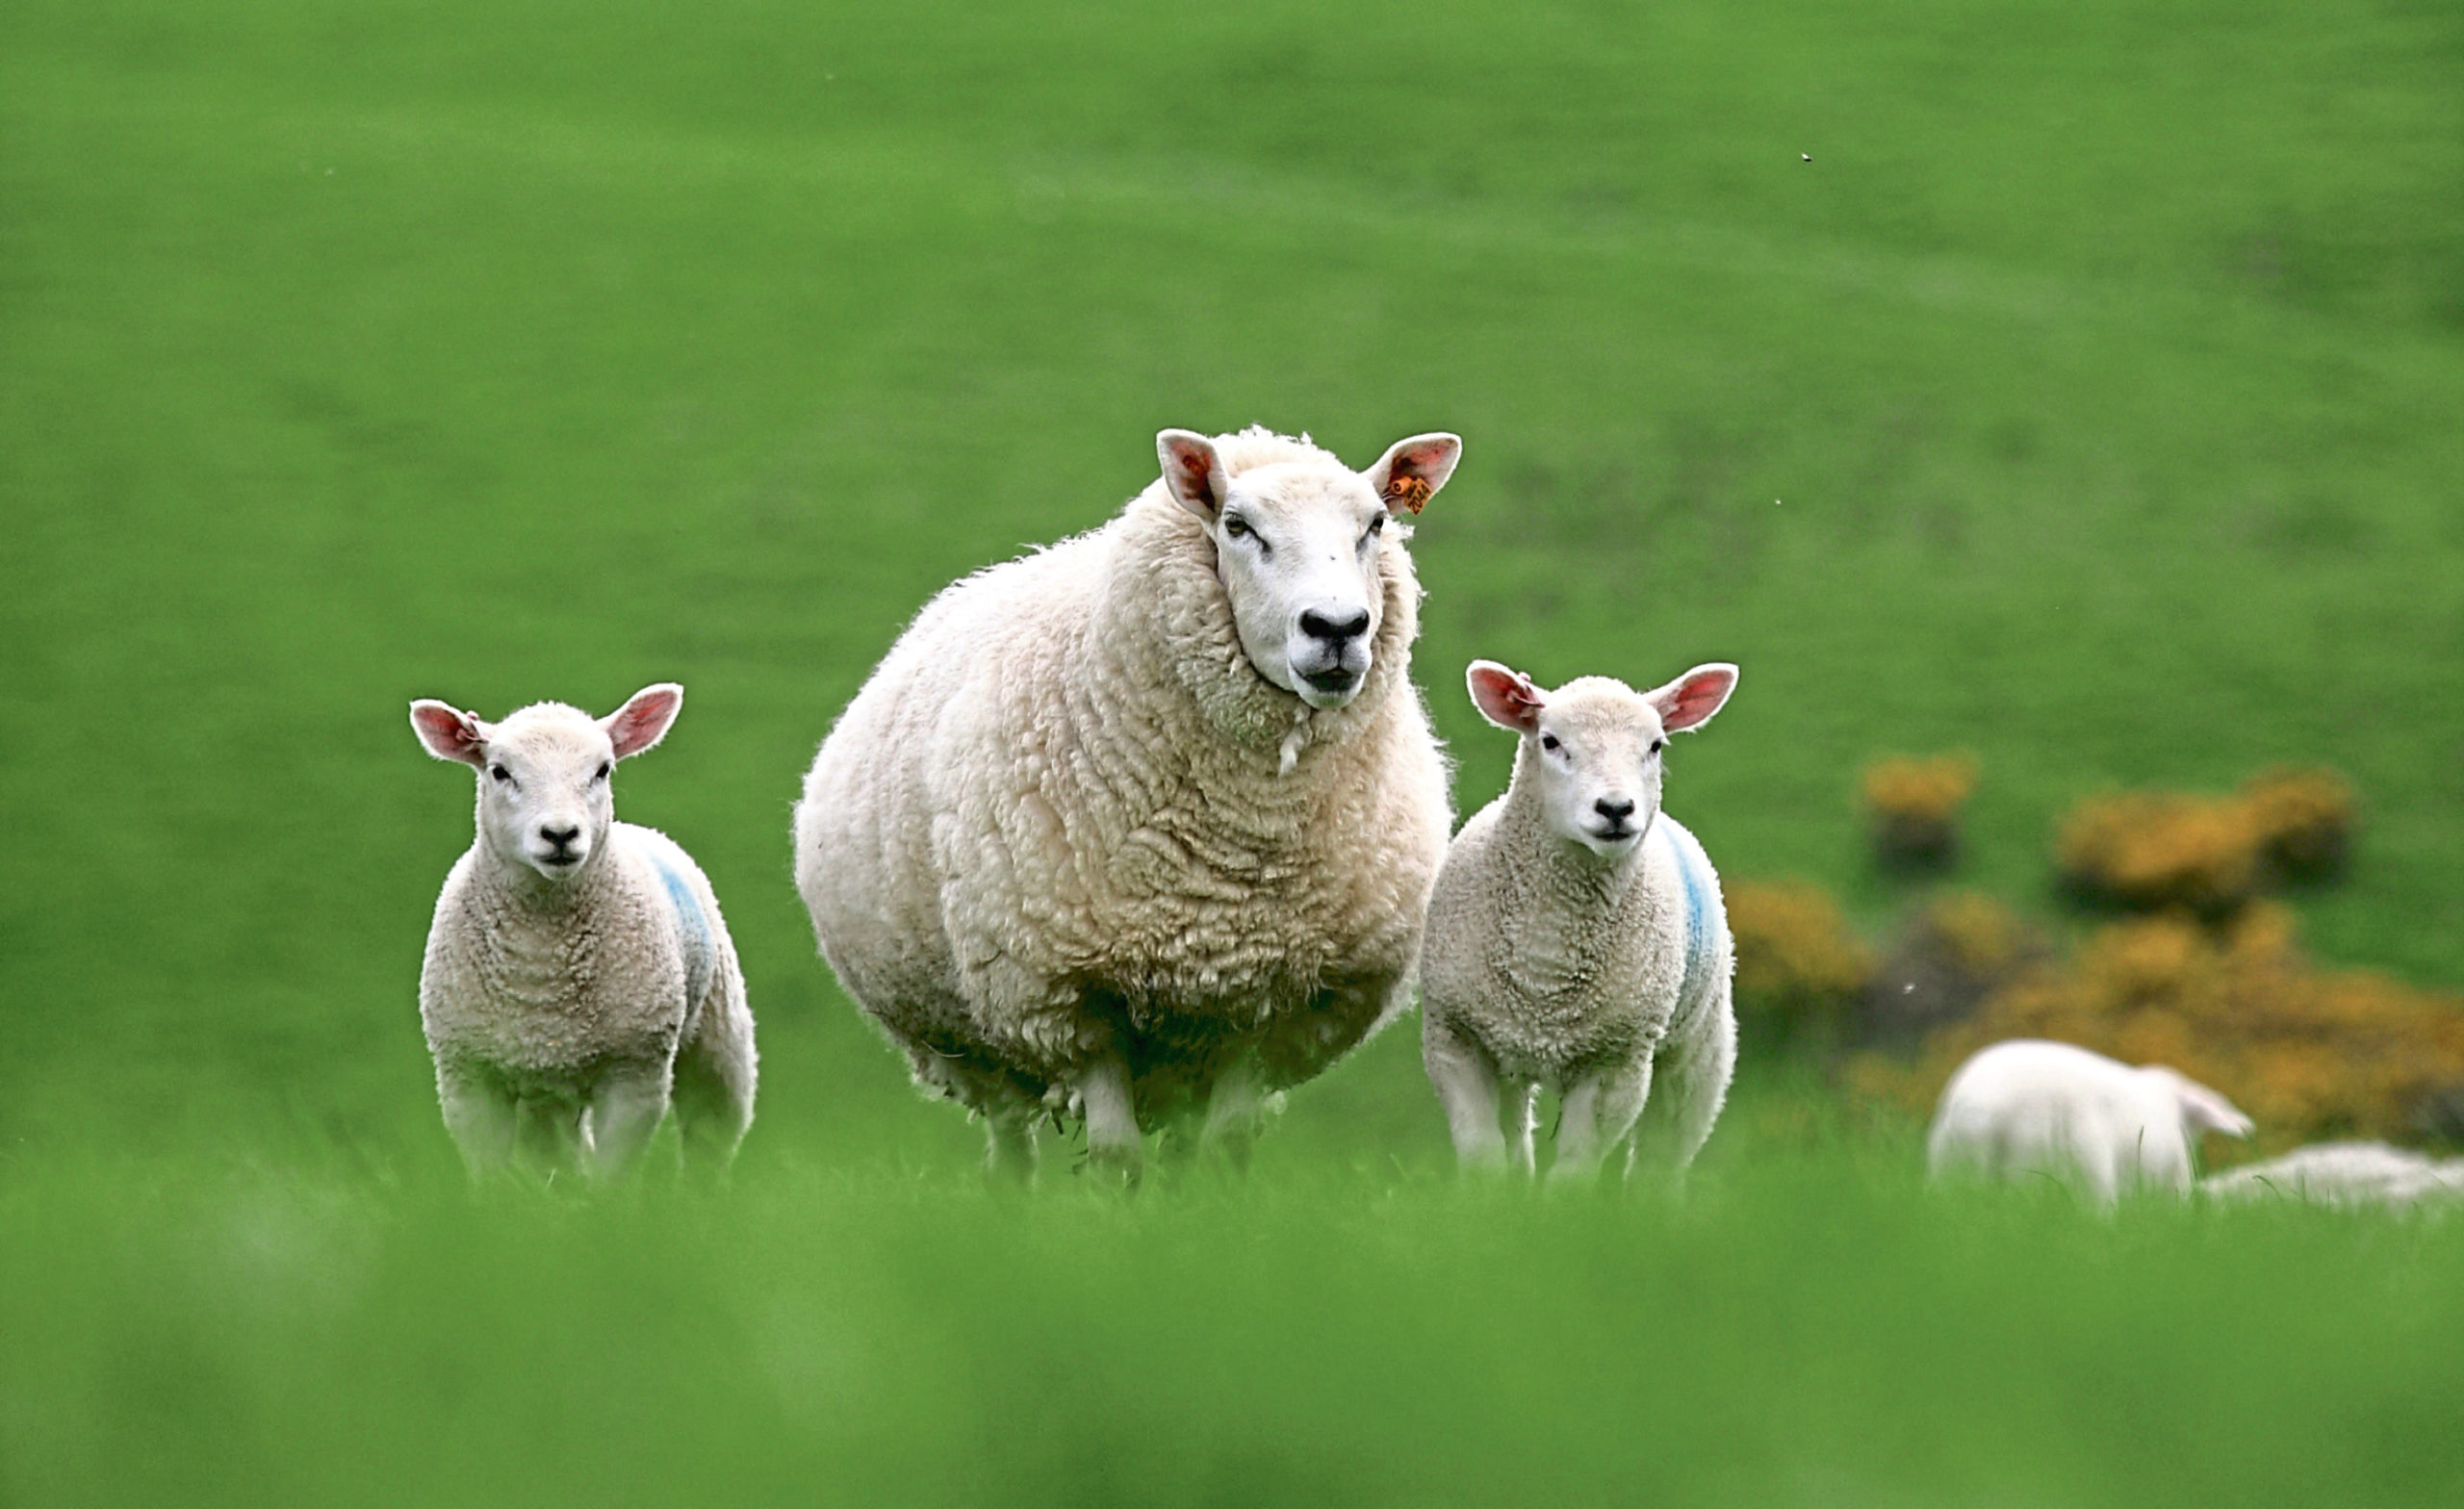 AB Europe says the service will help breeders increase the rate of genetic gain in their flocks.